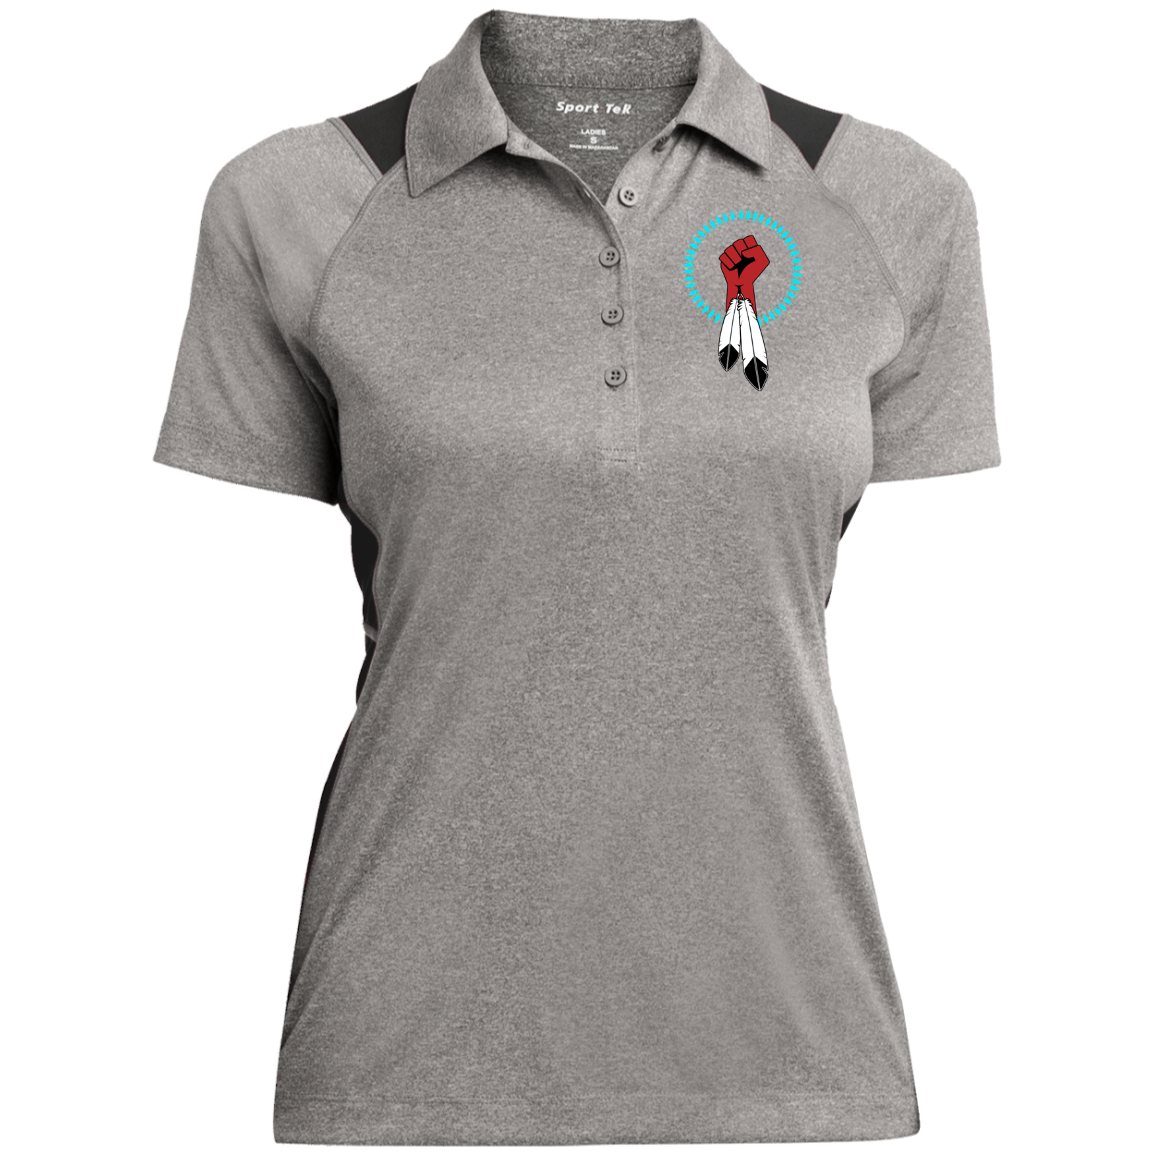 N8V MOVEMENT Women's Heather Moisture Wicking Polo